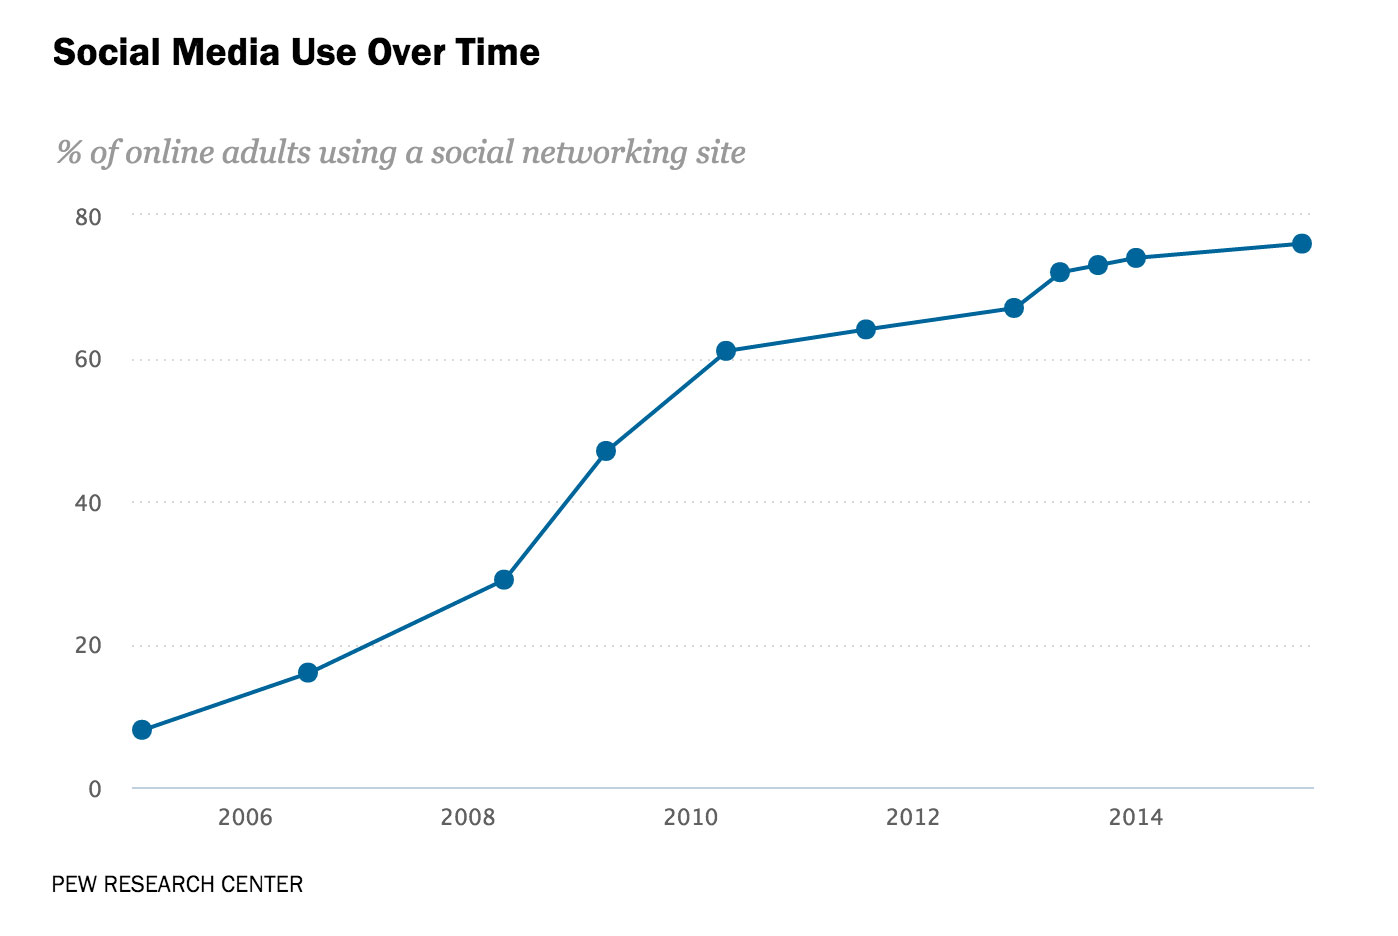 Usage of social networks in the US has surged.